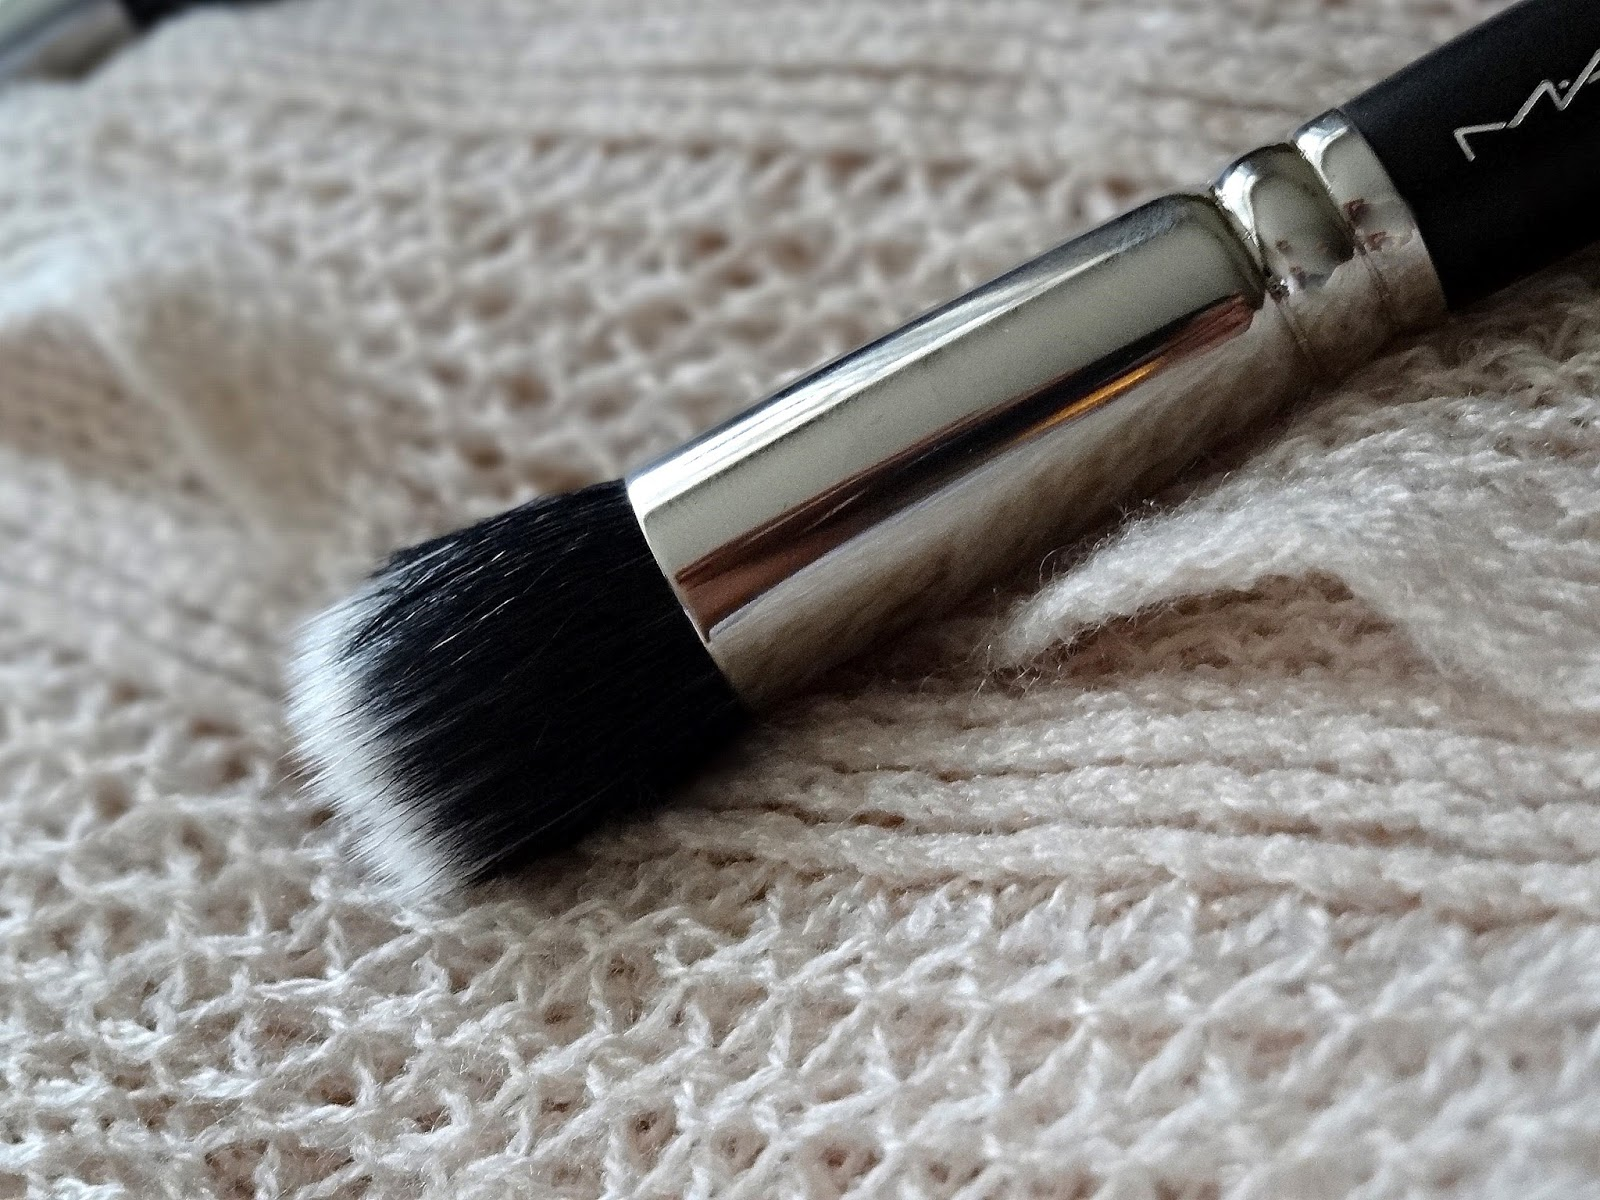 MAC 130 Short Duo Fibre Brush Review, Photos